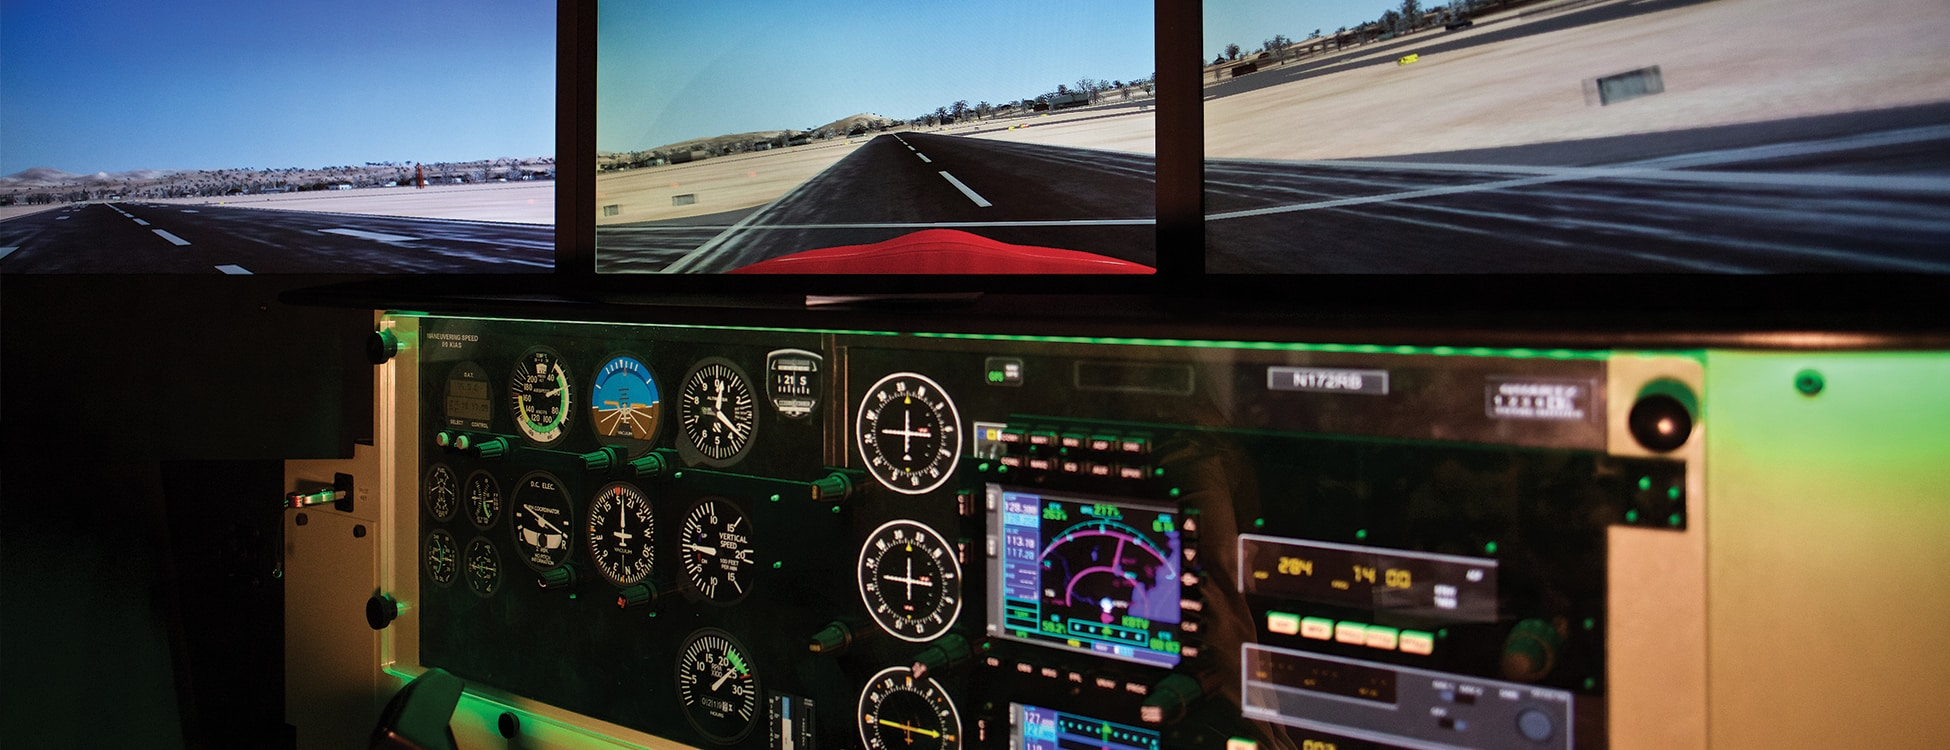 Professional Pilot flight simulator controls with screen showing a landing, Williston campus